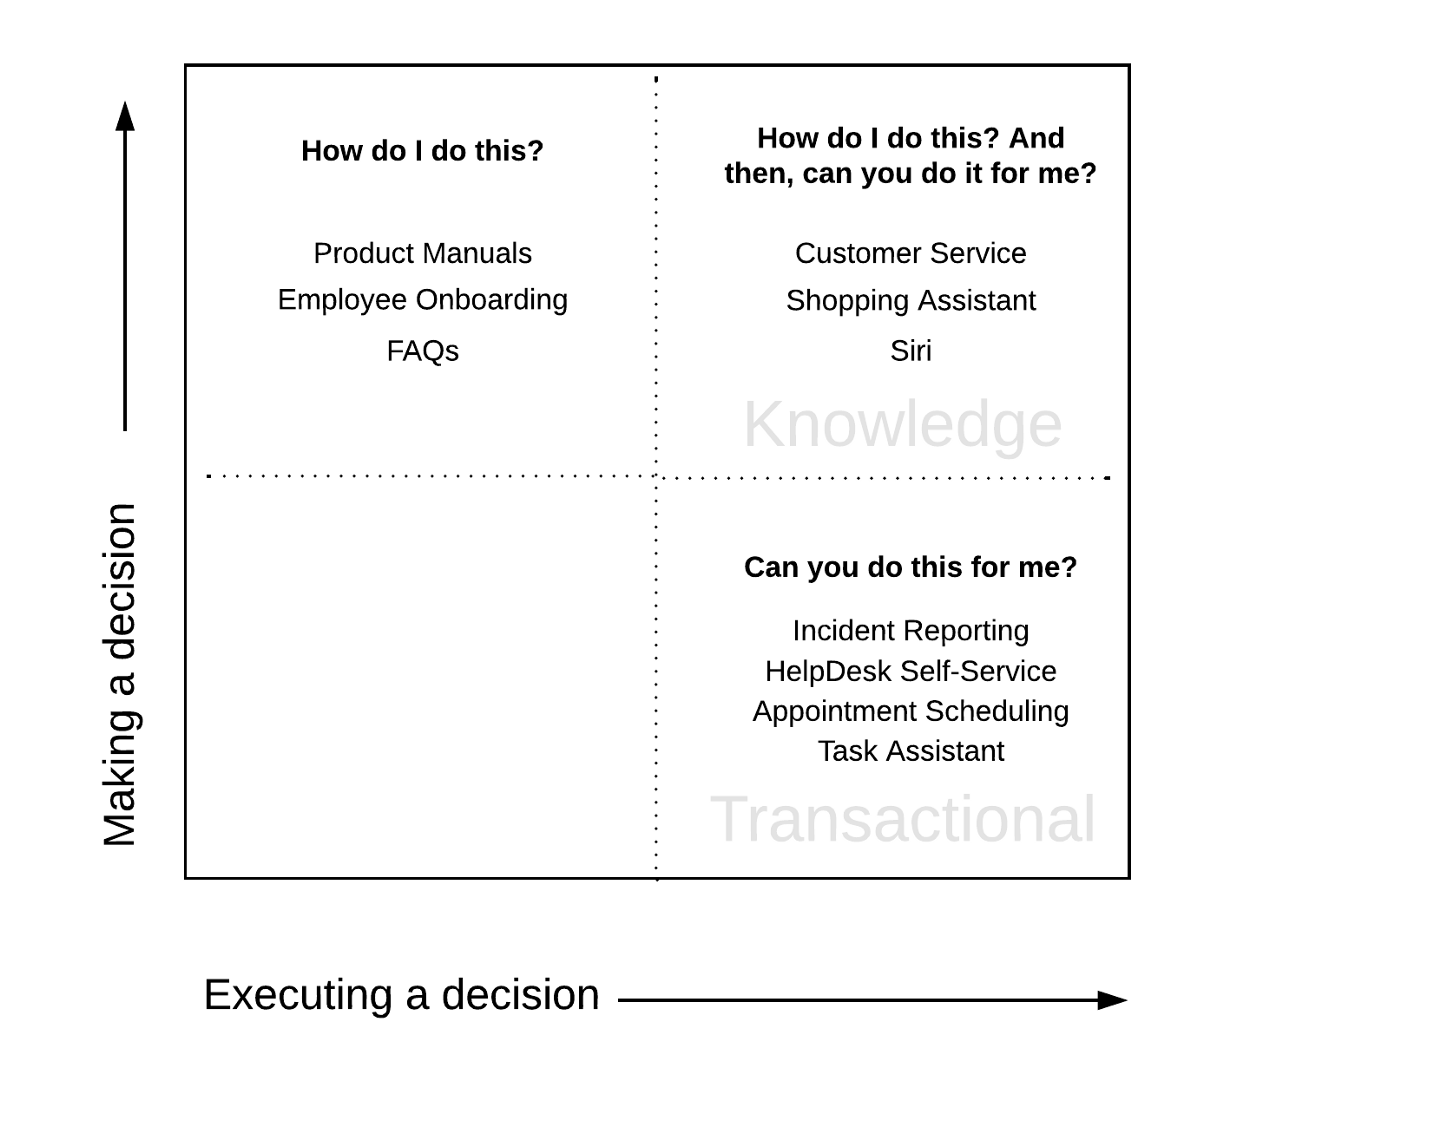 Knowledge vs Transactional